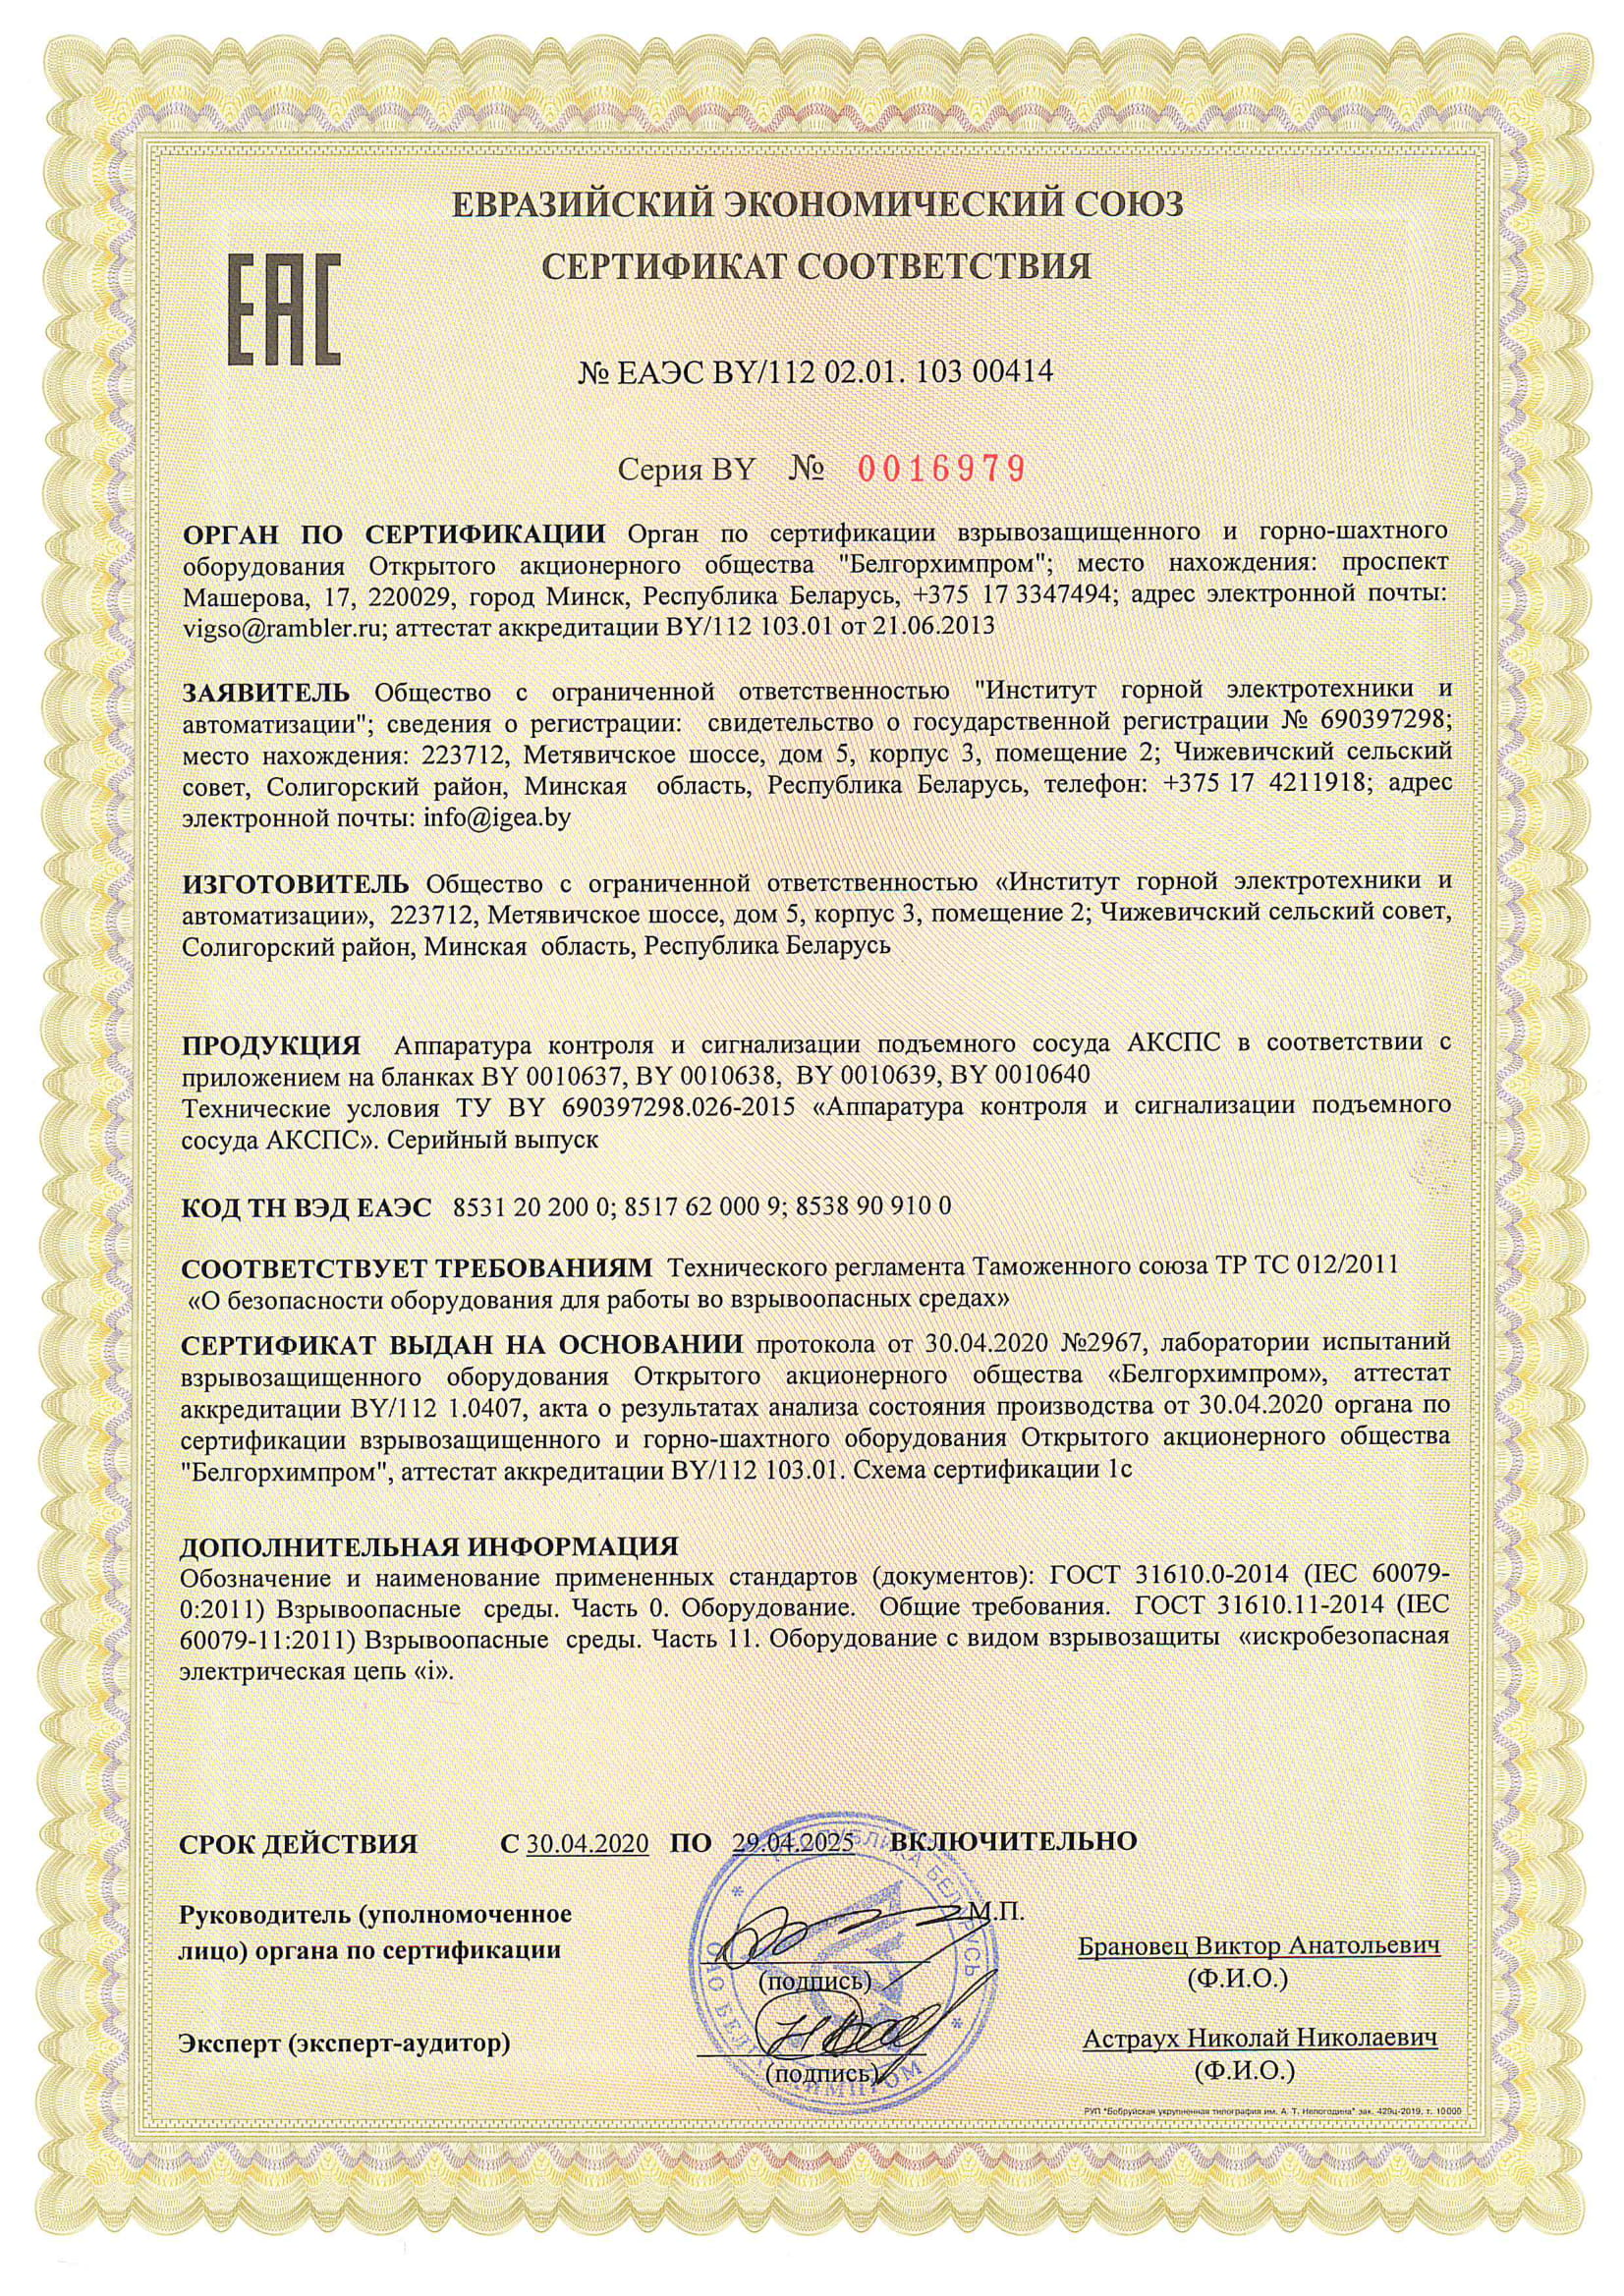 Certificate of conformity to CU TR 012/2011 No.ЕАЭС BY/112 02.01. 103 00414 valid till 29.04.2025